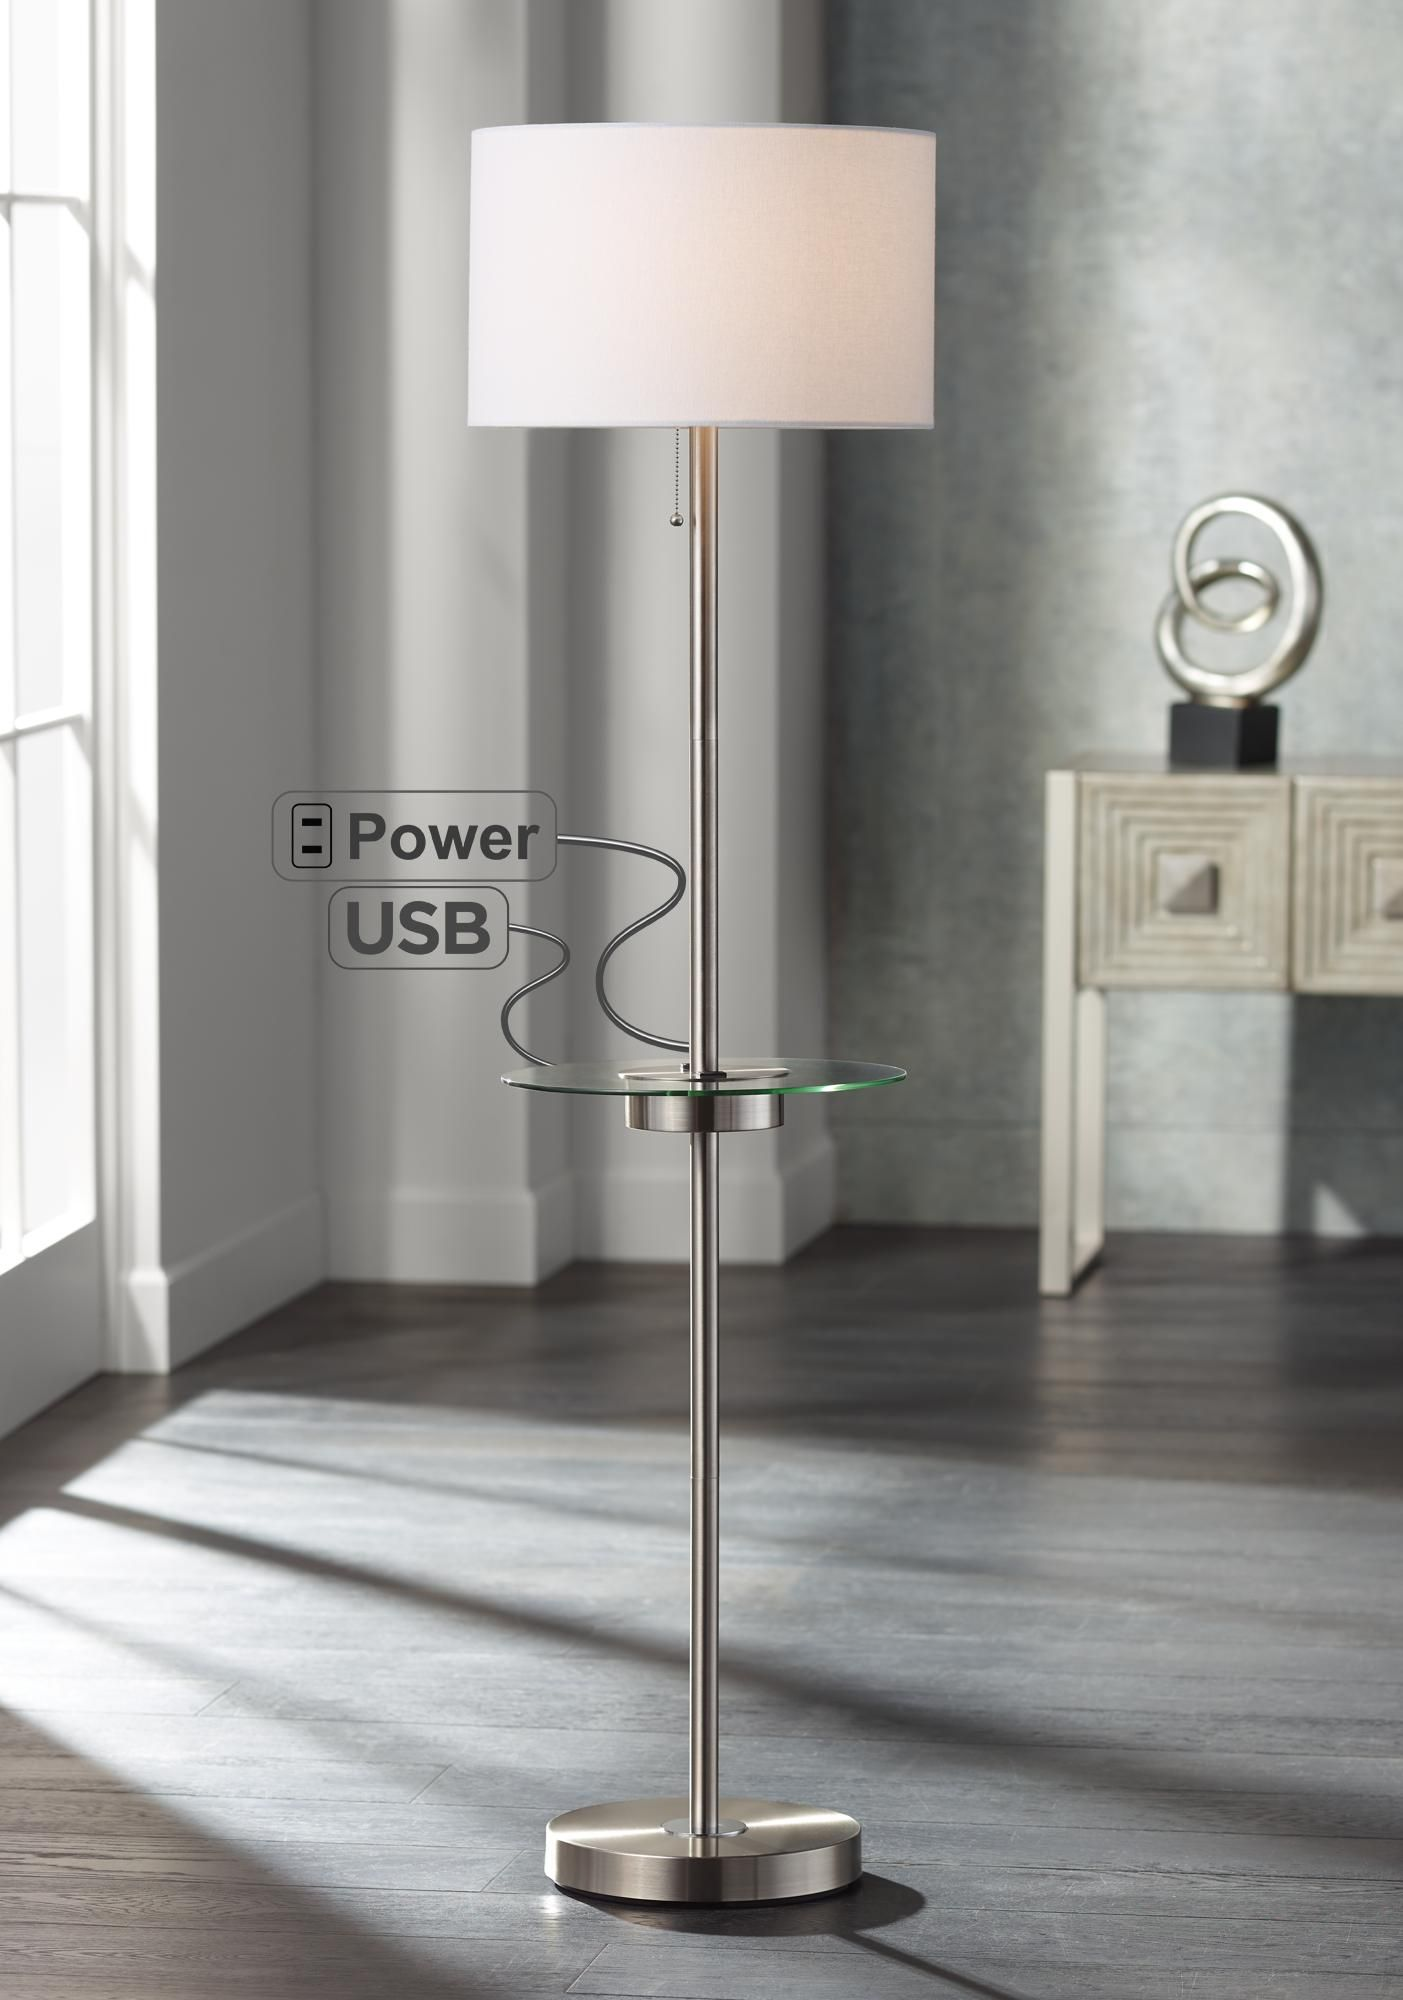 Floor Lamps Caper Nickel Tray Table Floor Lamp With Usb Port And Outlet Modern Floor Lamps Floor Lamp Table Contemporary Floor Lamps